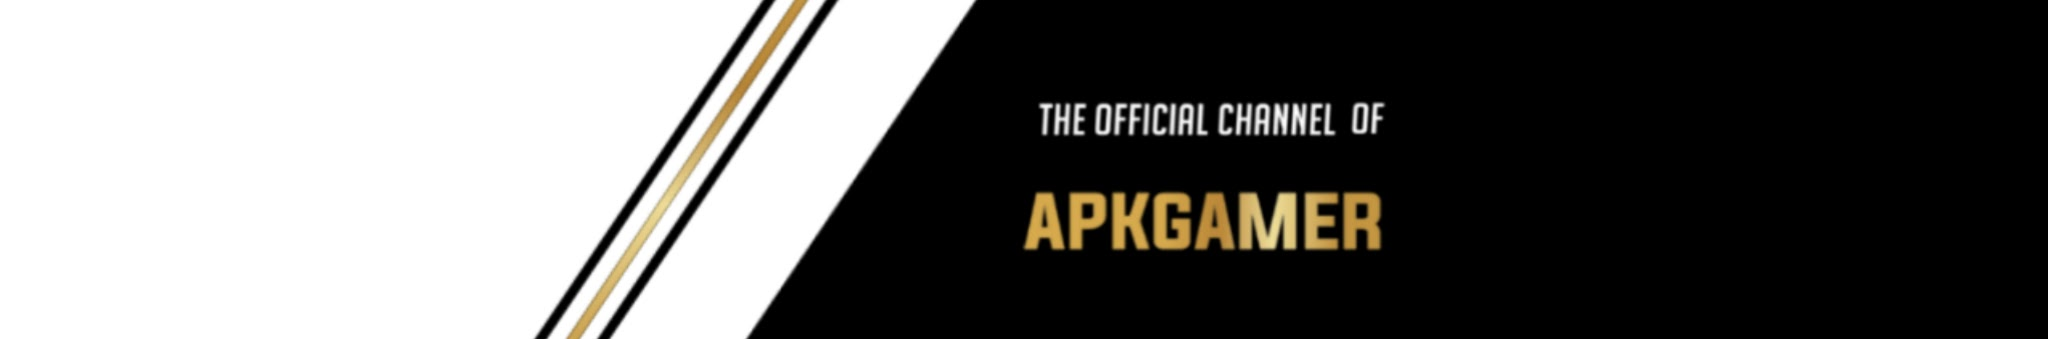 Apkgamer Youtube Channel Analytics And Report Powered By Noxinfluencer Mobile It has a global traffic rank of #304,735 in the world. apkgamer youtube channel analytics and